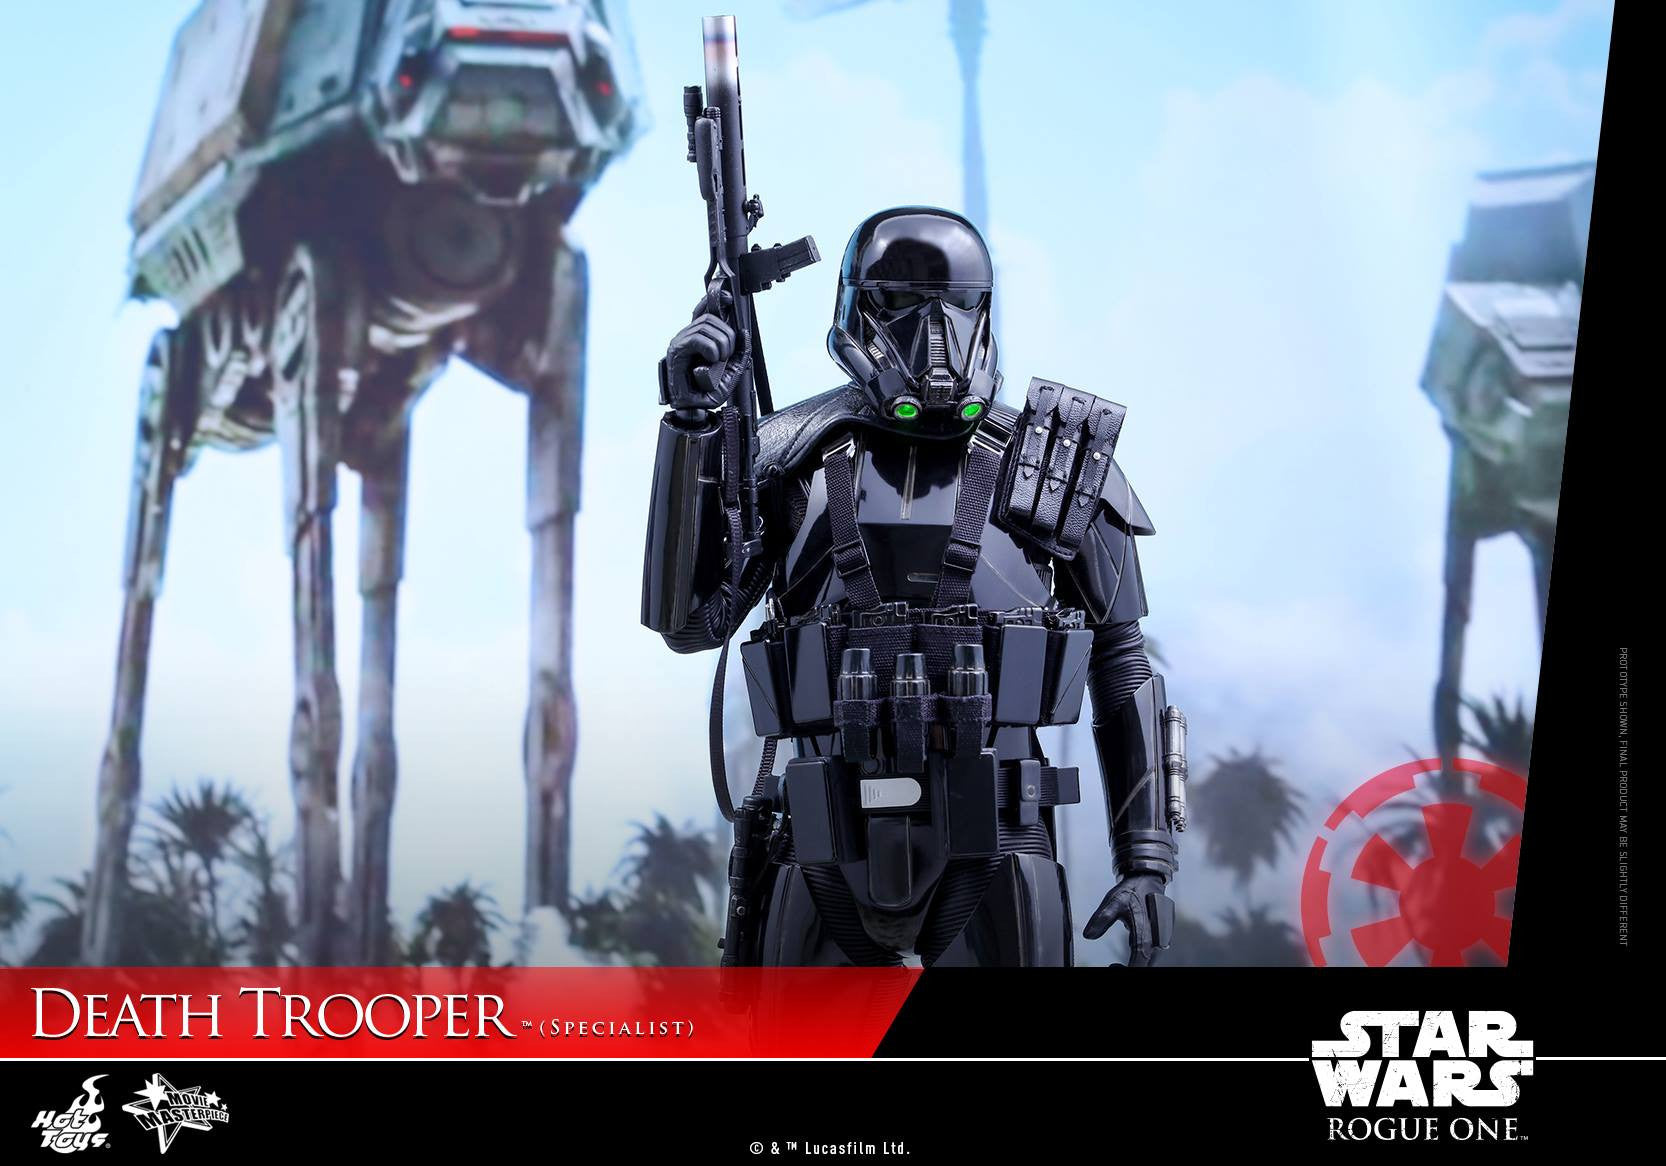 Hot Toys - MMS385 - Rogue One: A Star Wars Story - Death Trooper (Specialist) - Marvelous Toys - 13